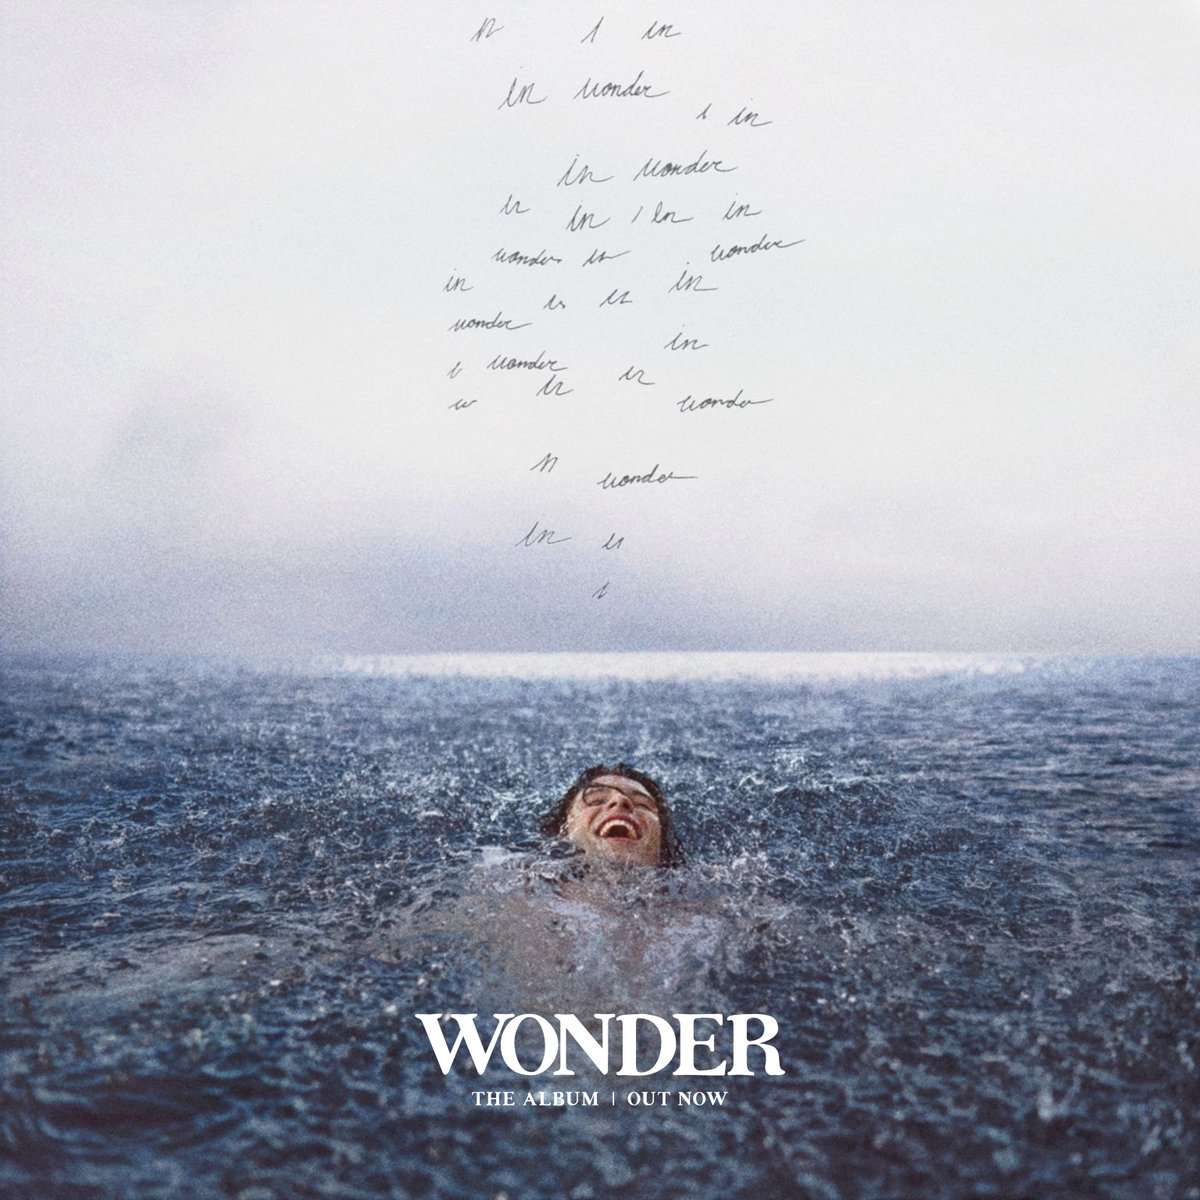 #WONDER the album is out now 🖤